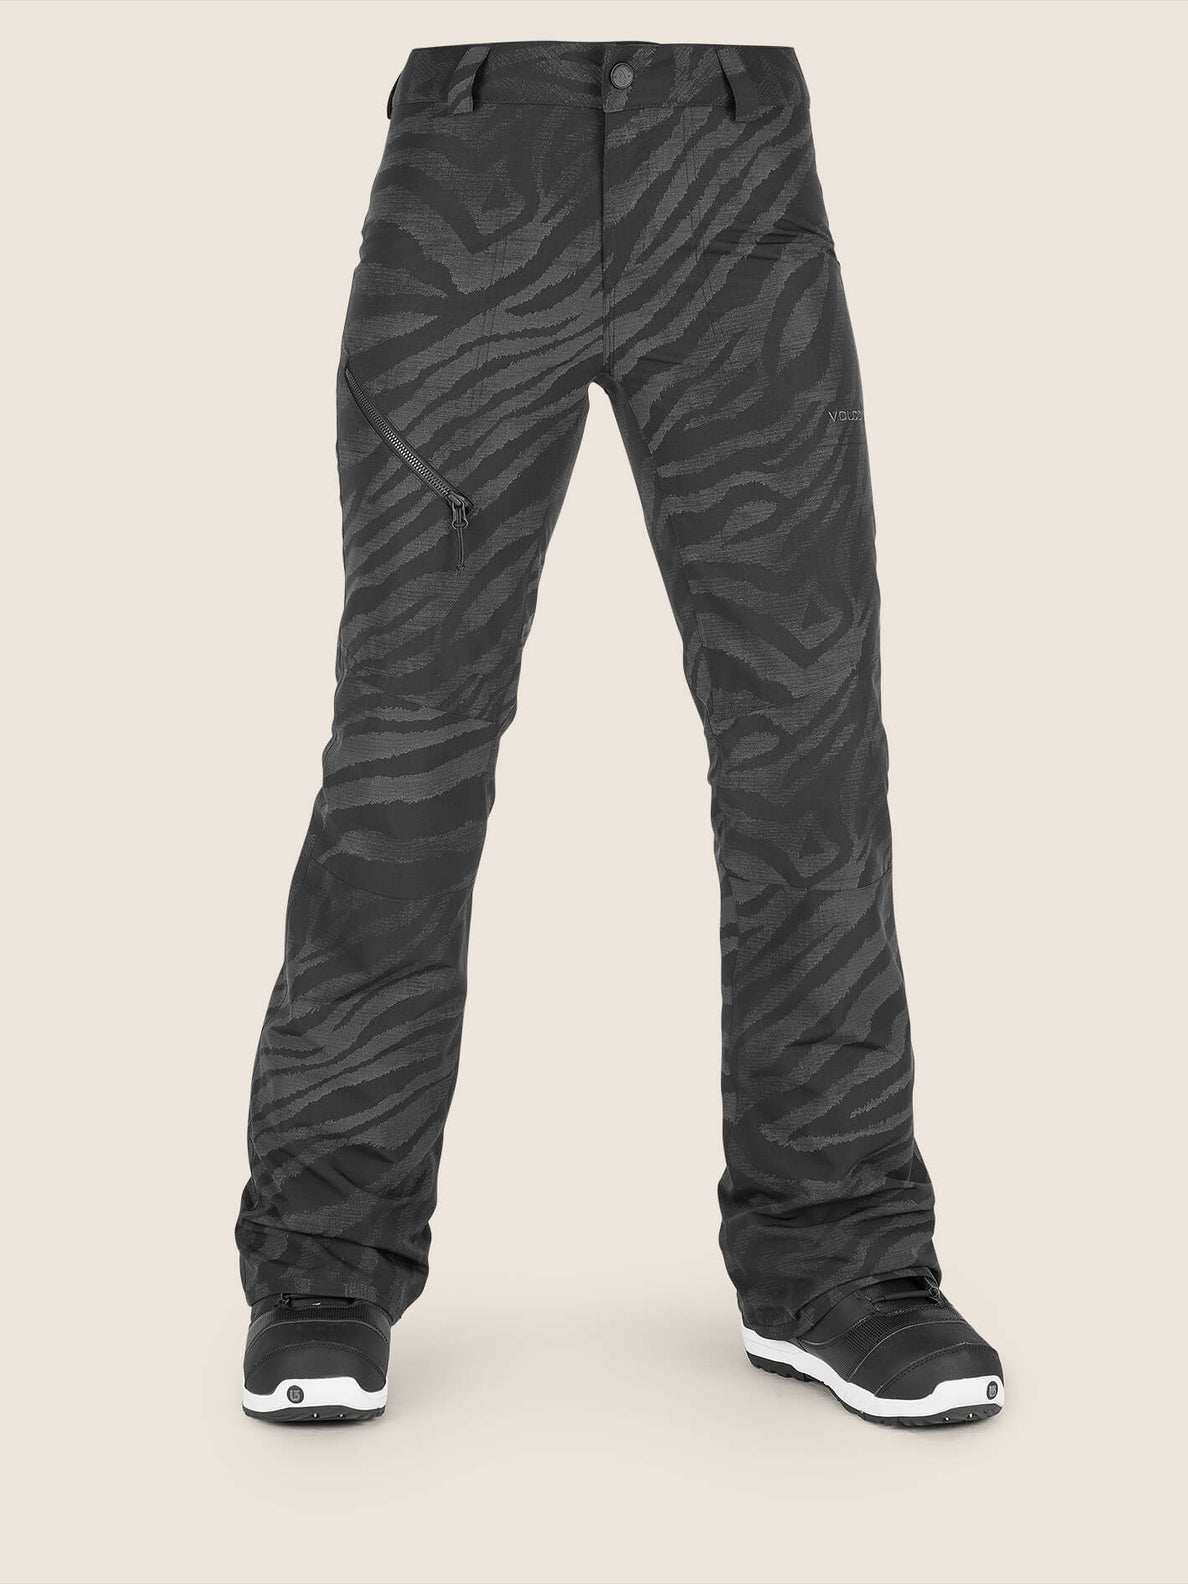 Hallen Pant In Black On Black, Front View